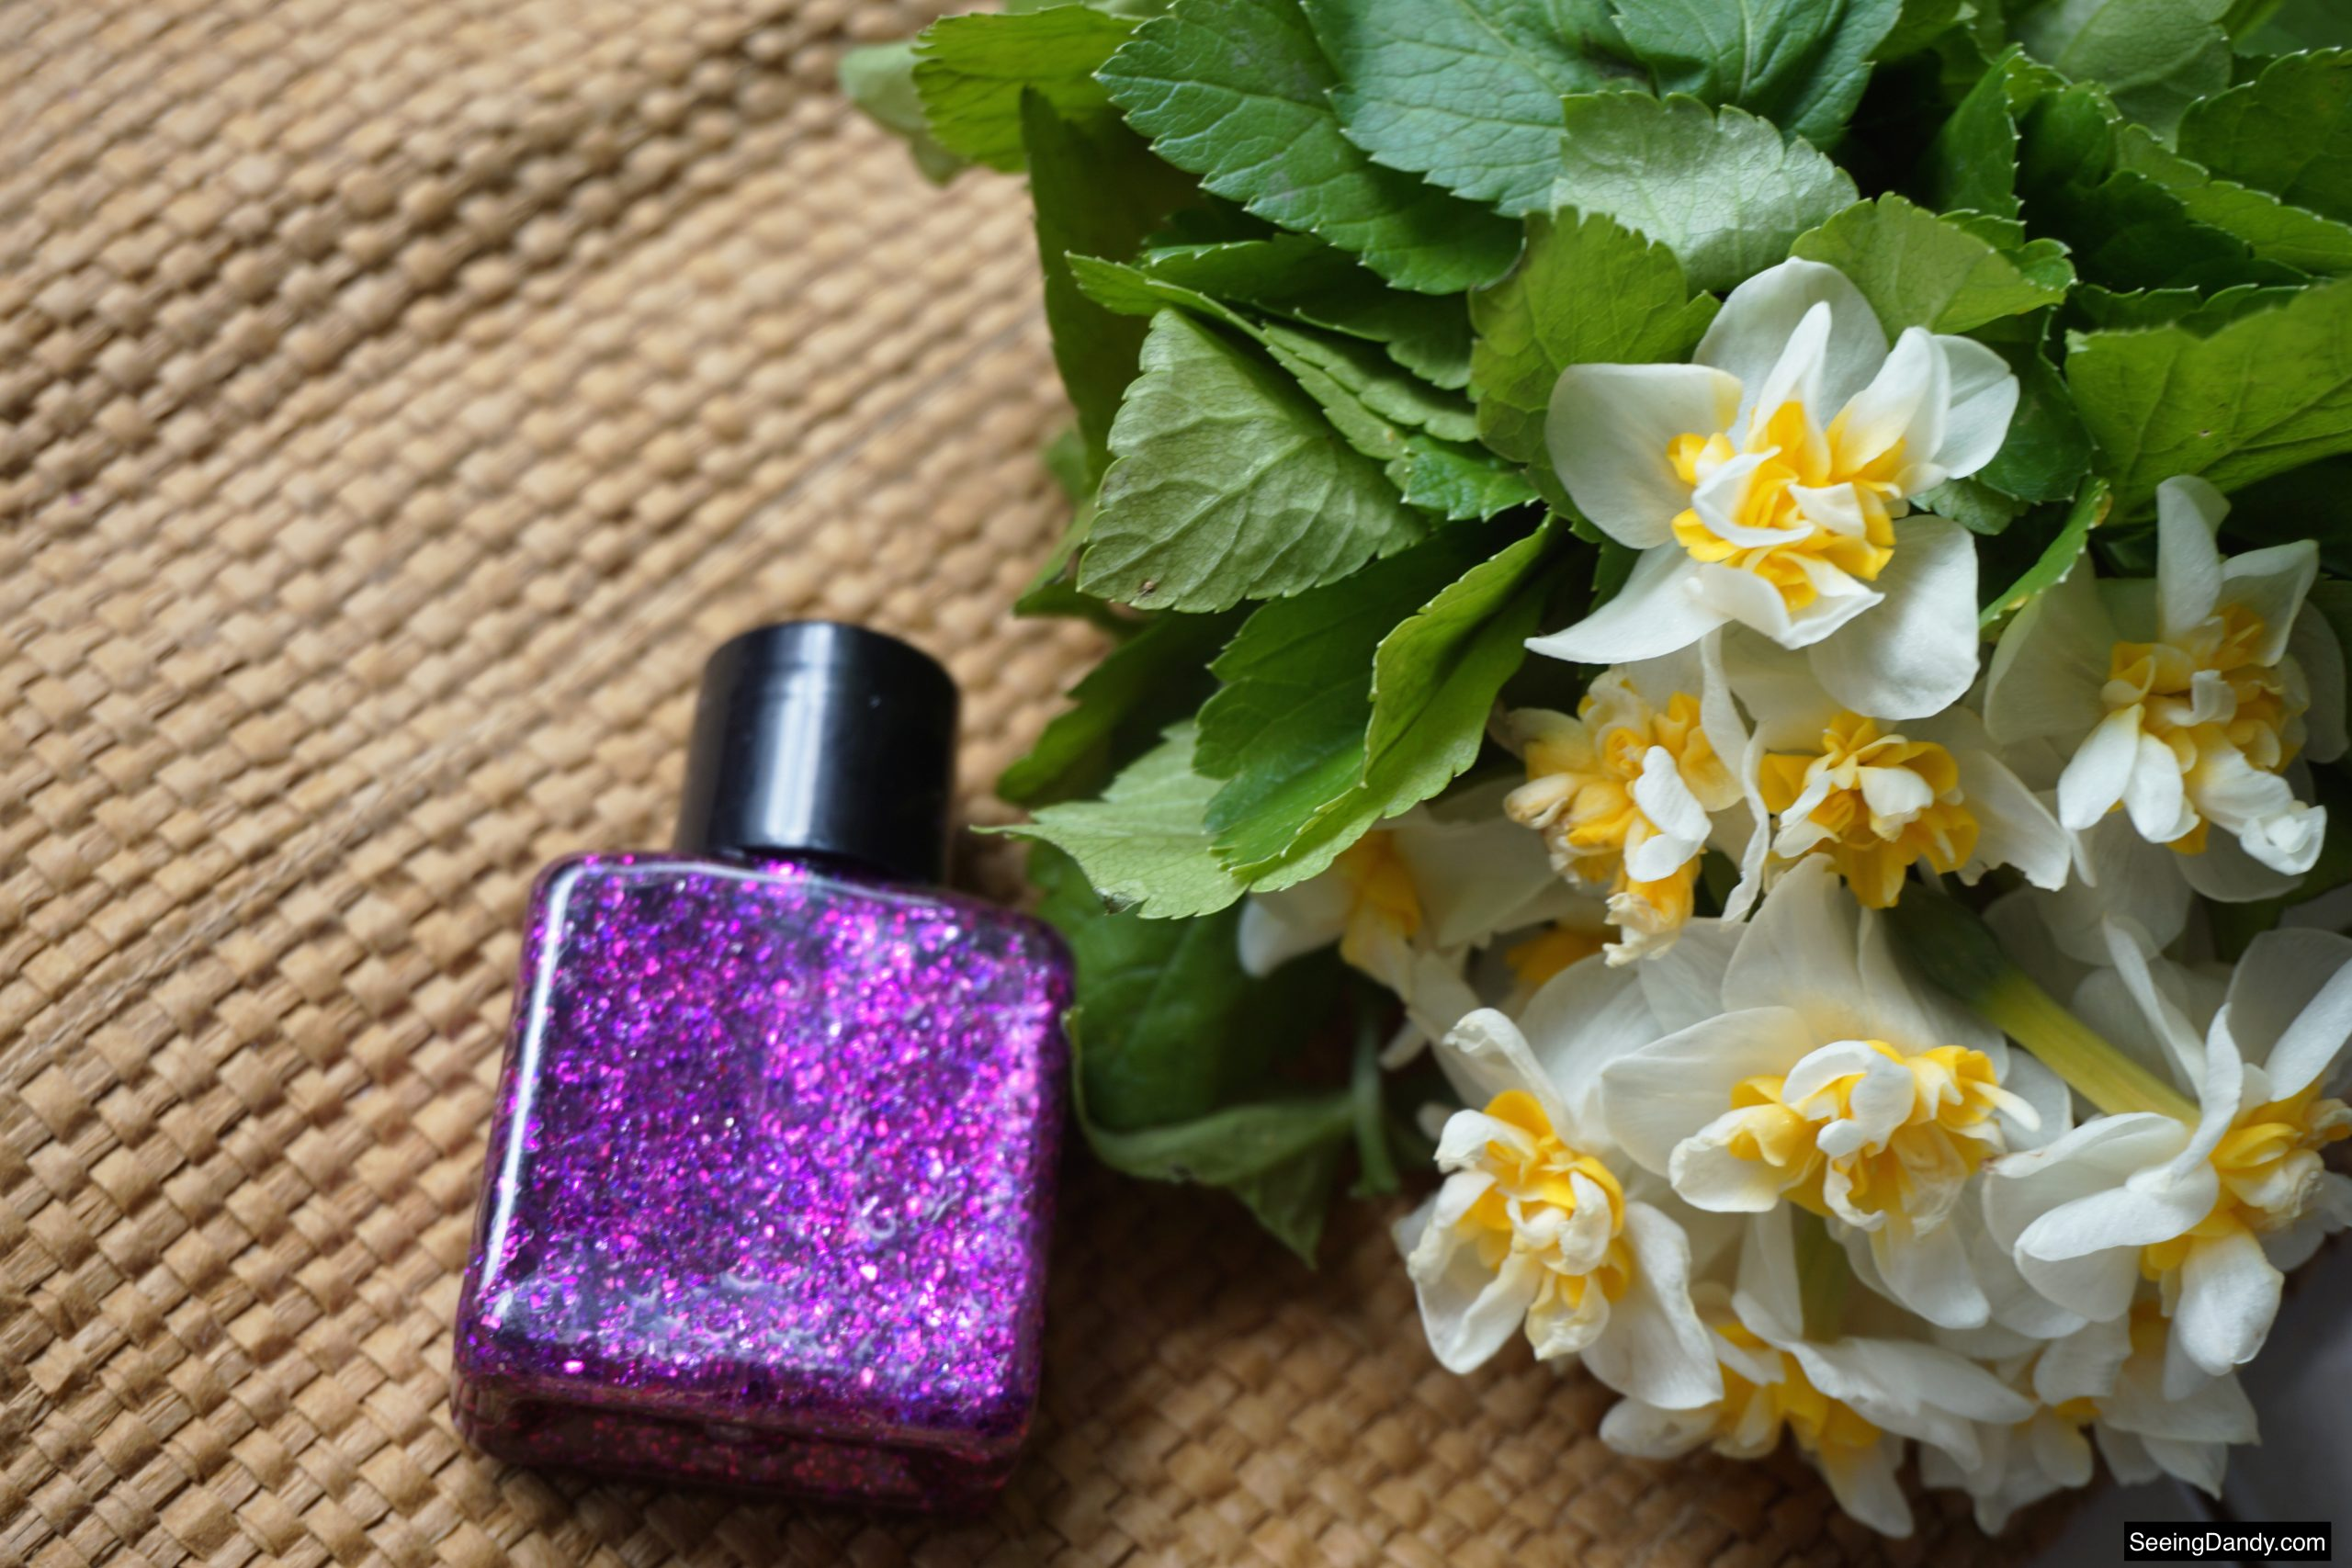 homemade aloe vera glitter gel recipe, easy recipes, beauty recipe, makeup recipe, diy body glitter, kids makeup, kids body glitter, jute rug, white yellow flowers, spring flowers, purple body glitter, eye shadow container, clear squeeze bottle